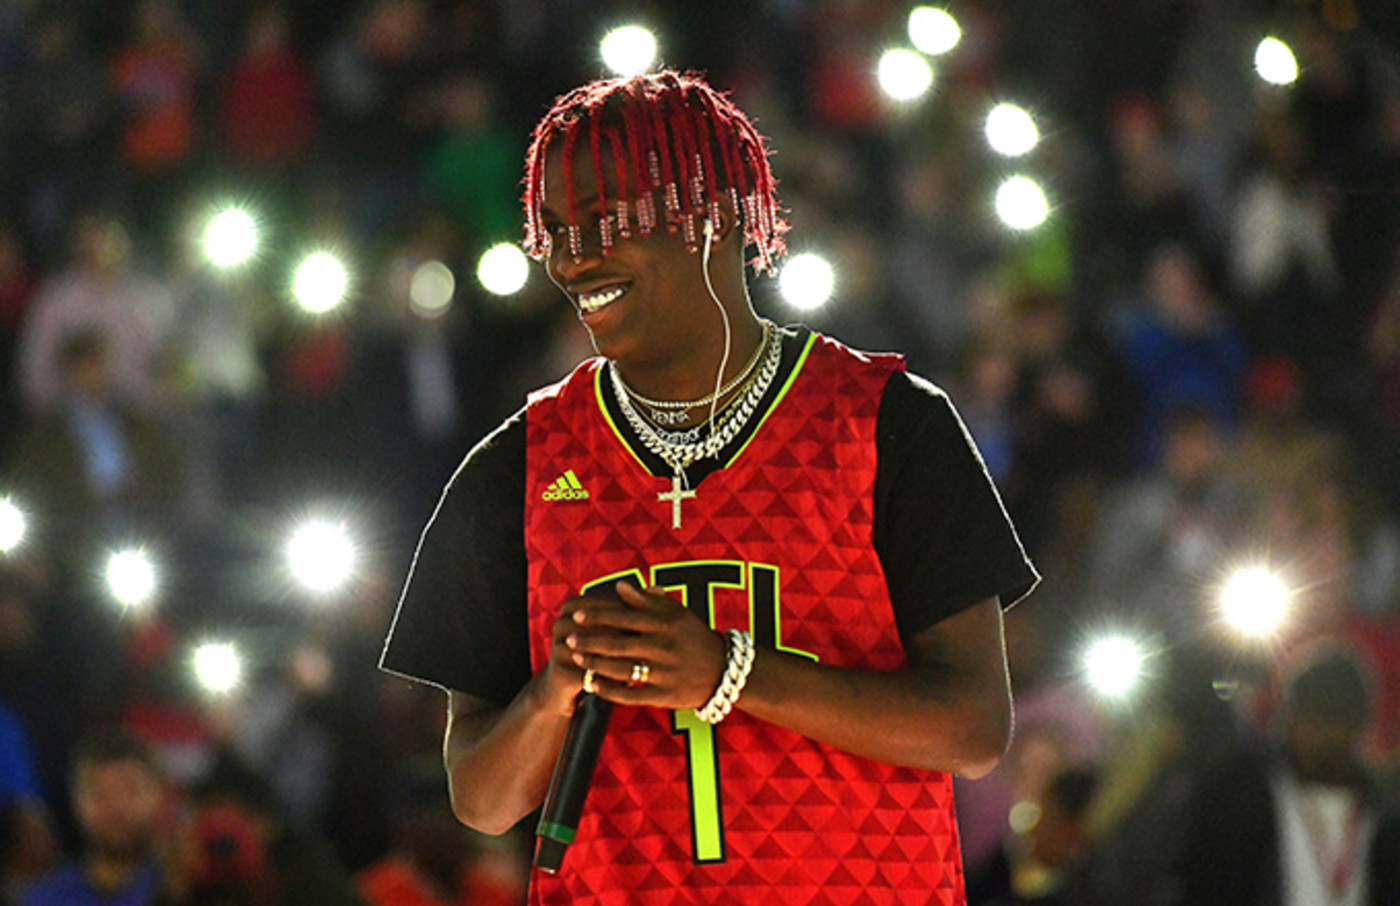 This is a photo of Lil Yachty.